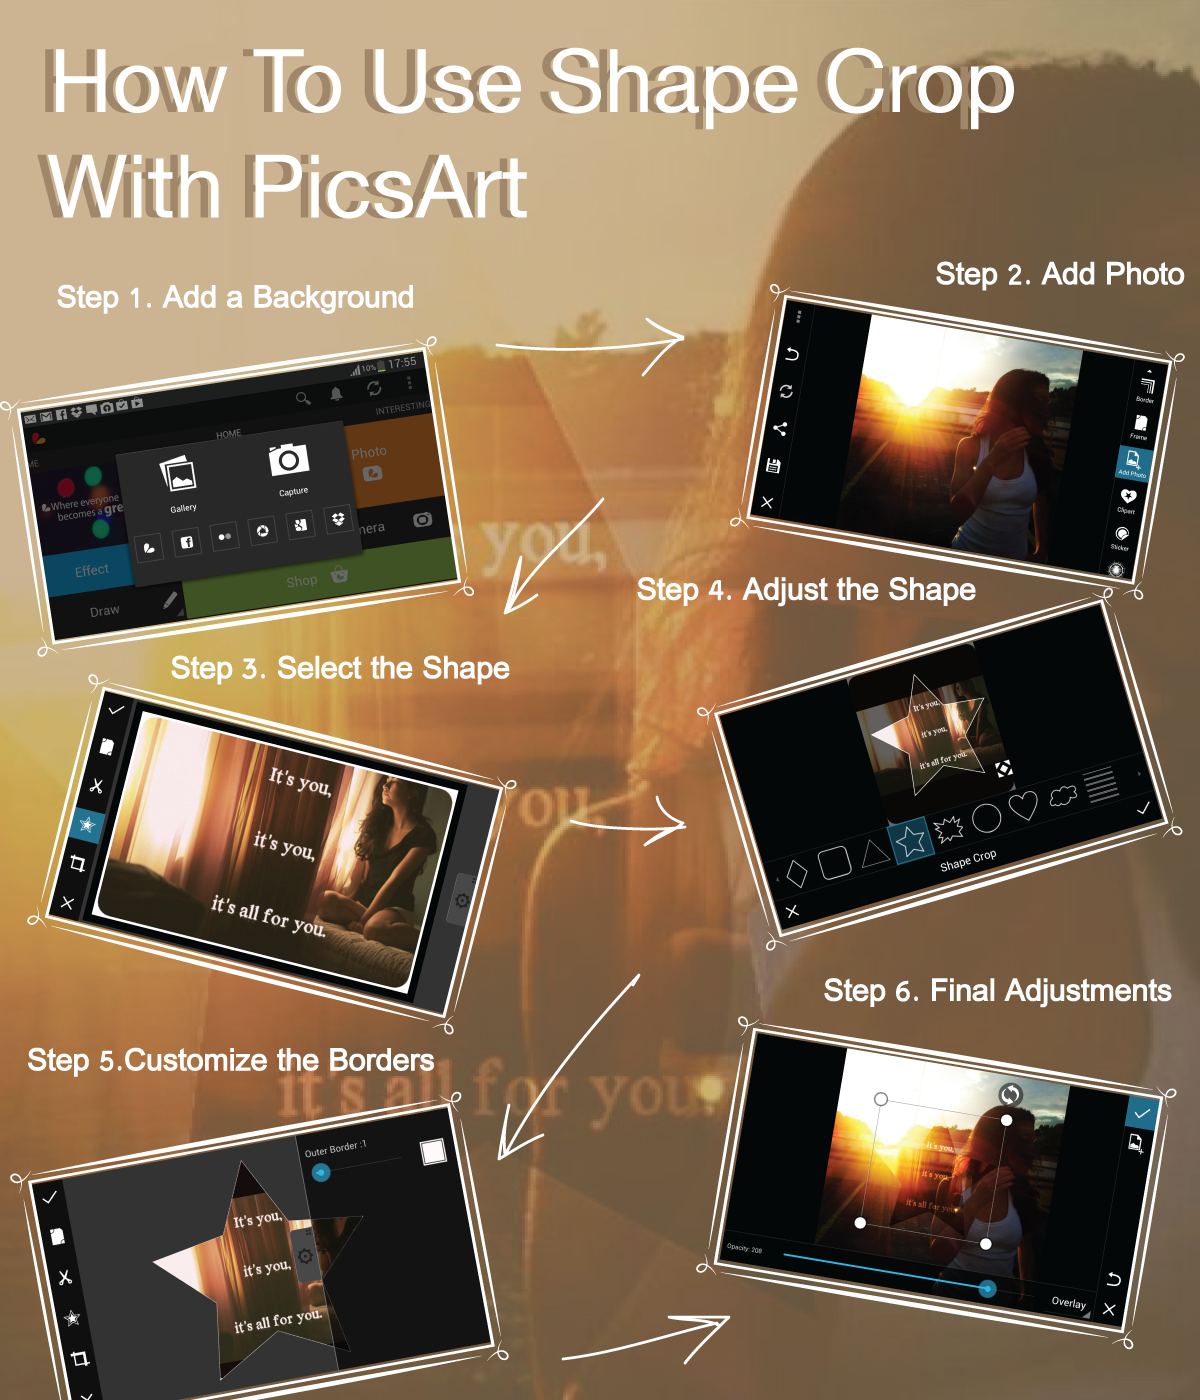 Check out PicsArt Shape Crop tutorial and